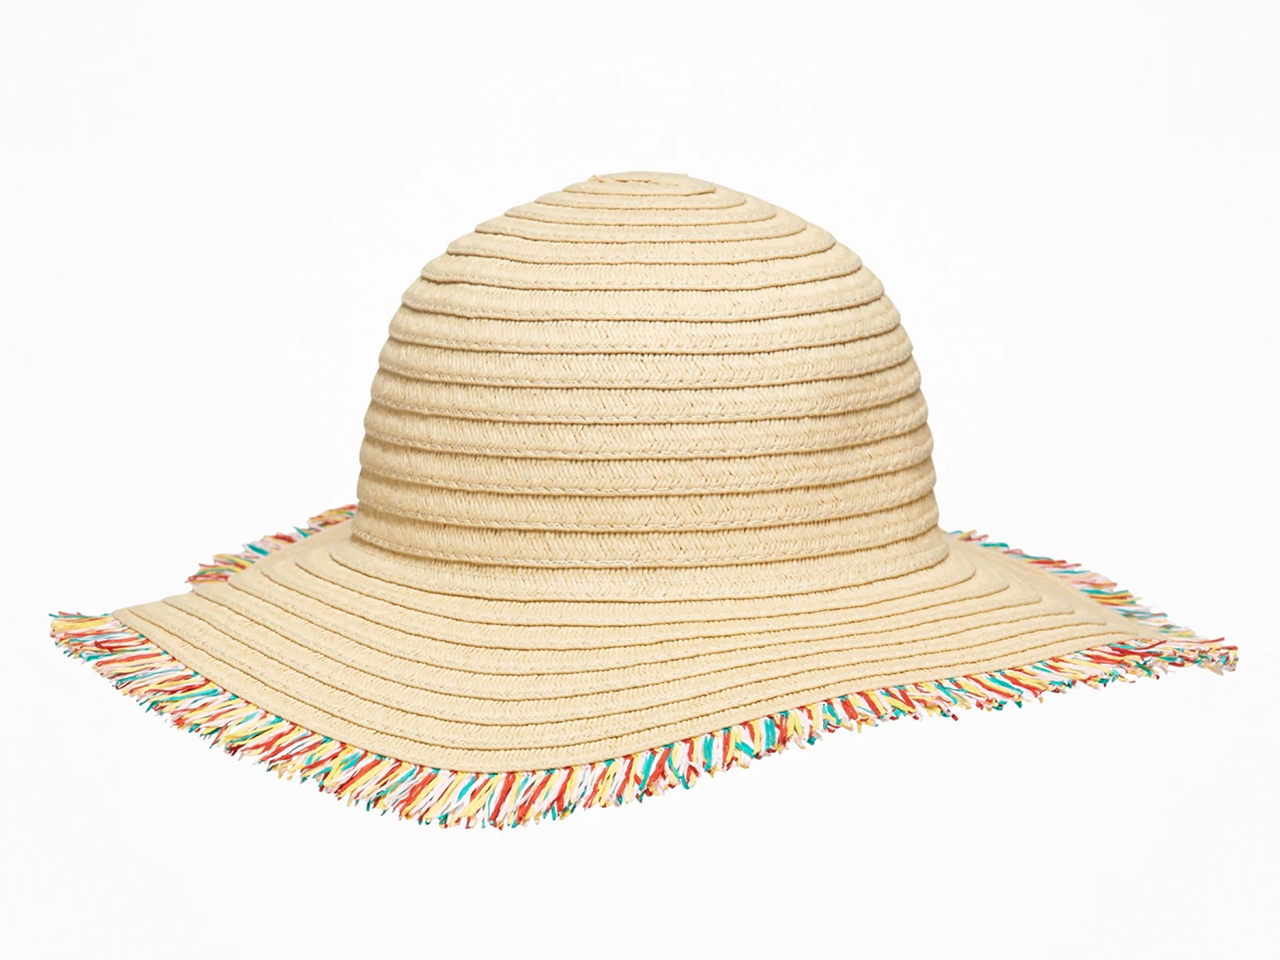 289bcce4 13 summer hats that are cute and will protect them from the sun